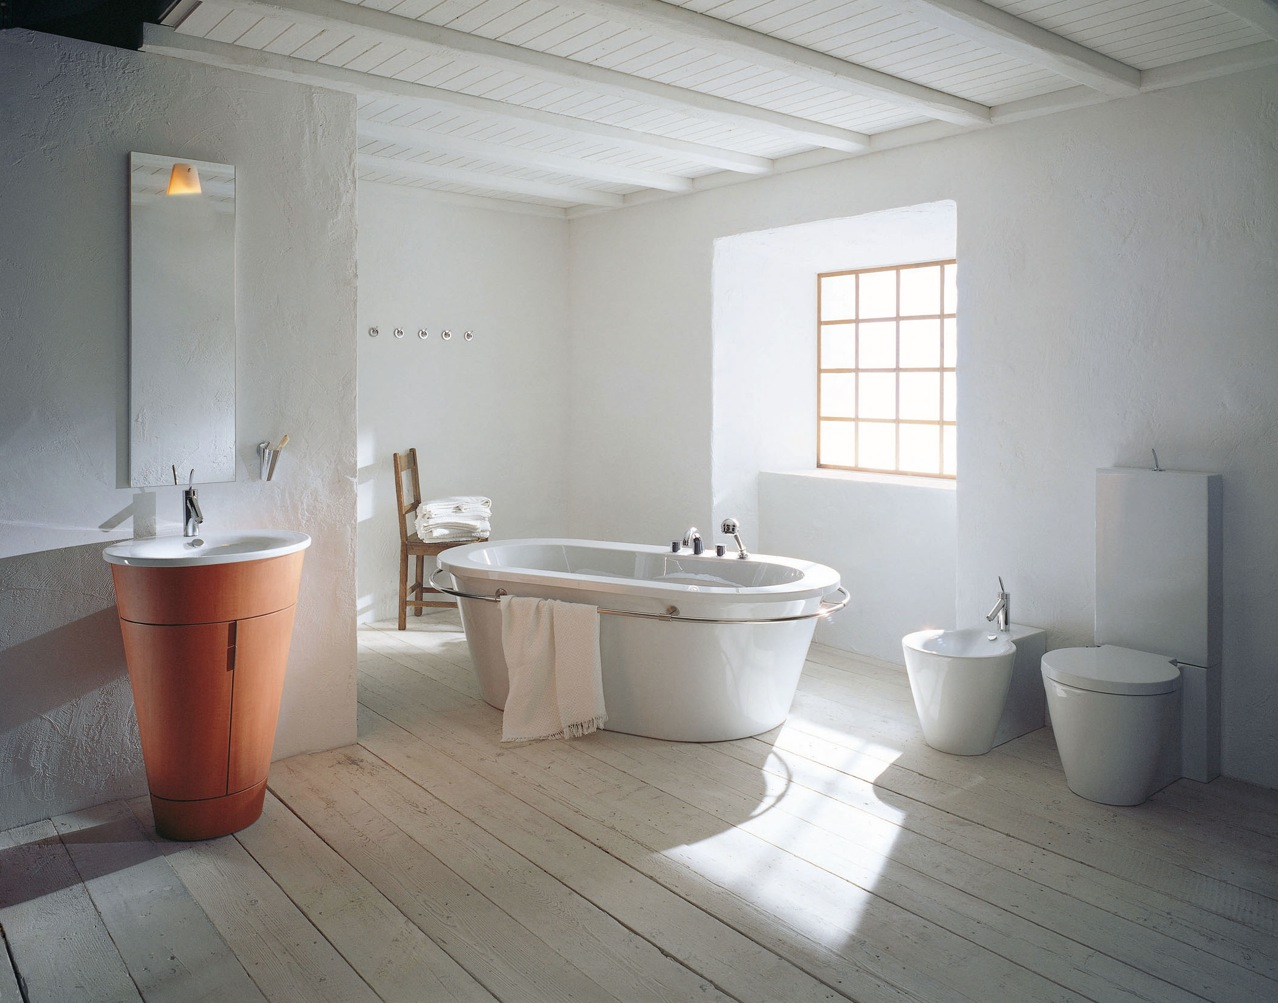 Philipe starck rustic modern bathroom decor interior for Pics of bathroom decor